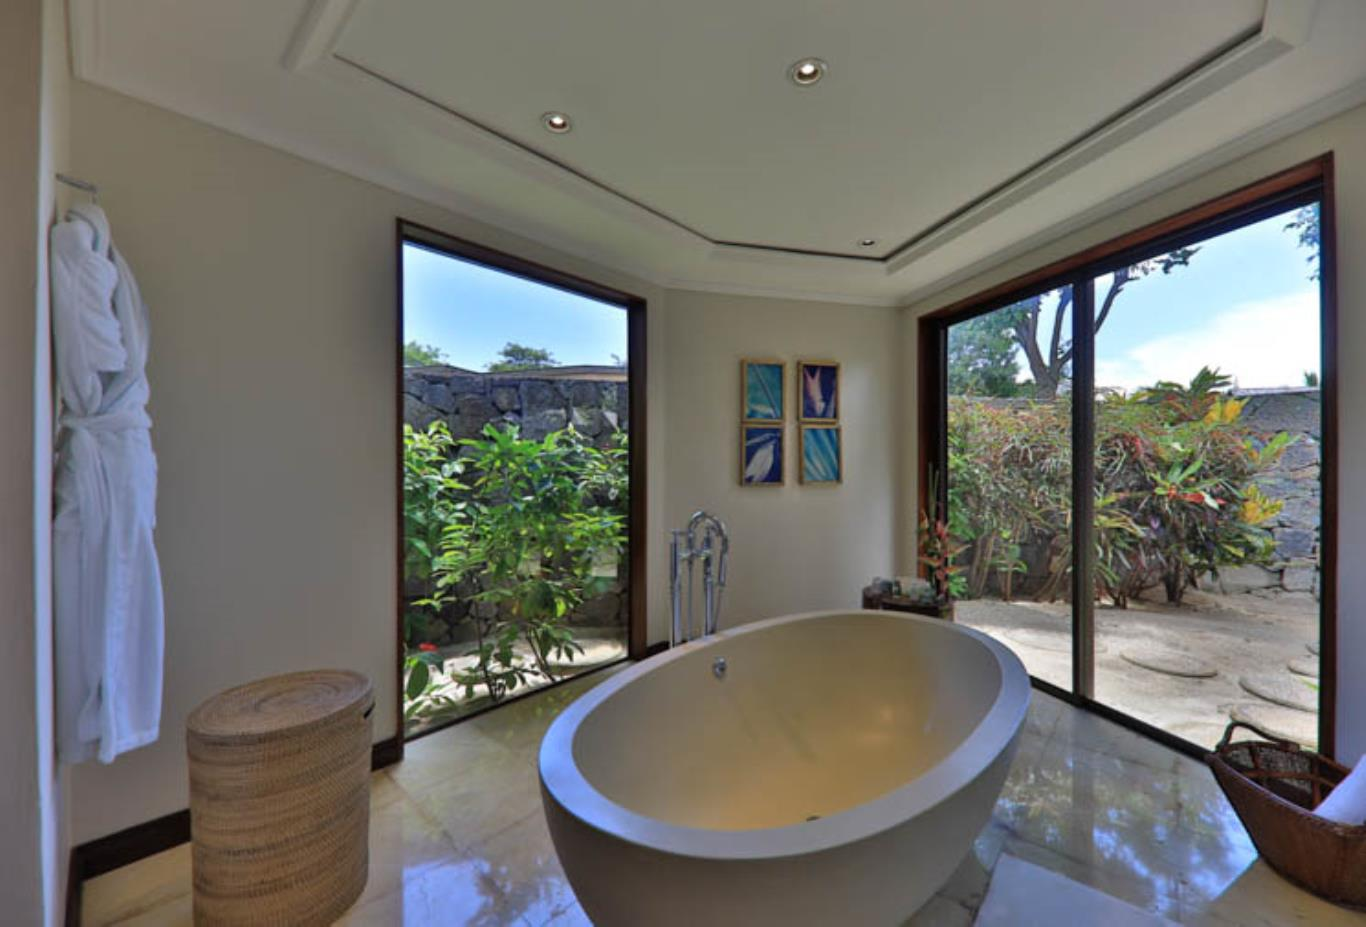 Exclusive Suite Pool Villa bathtub and views